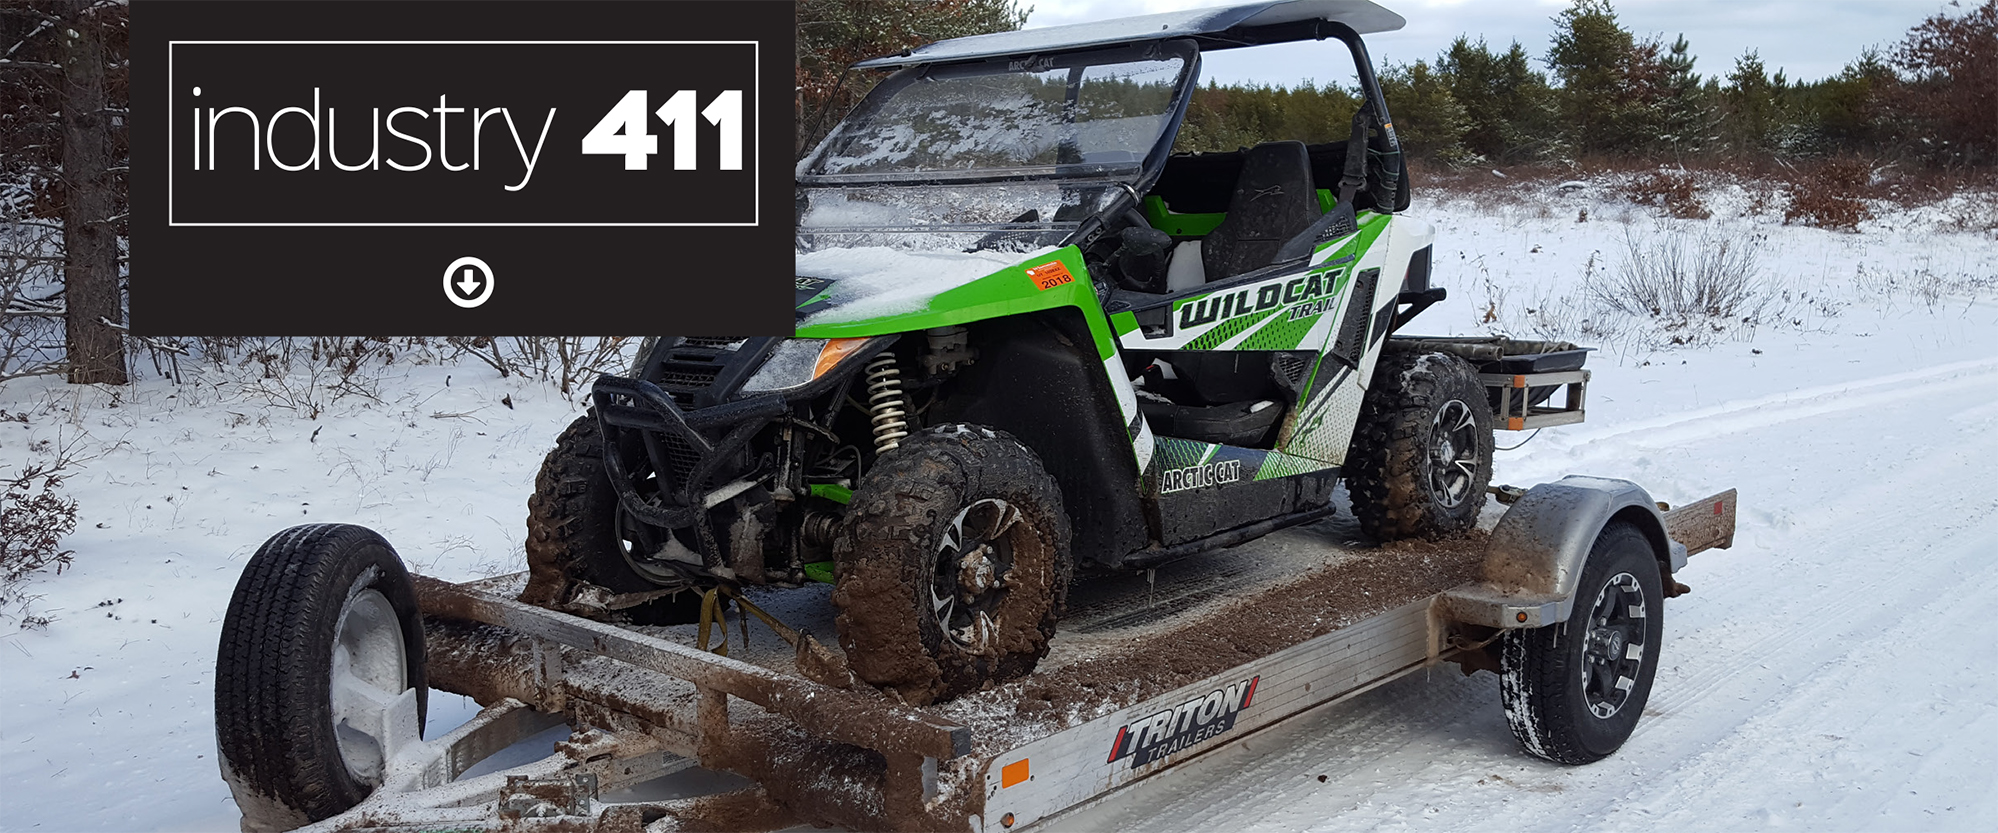 Photo of Tilt trailer with UTV covered in snow